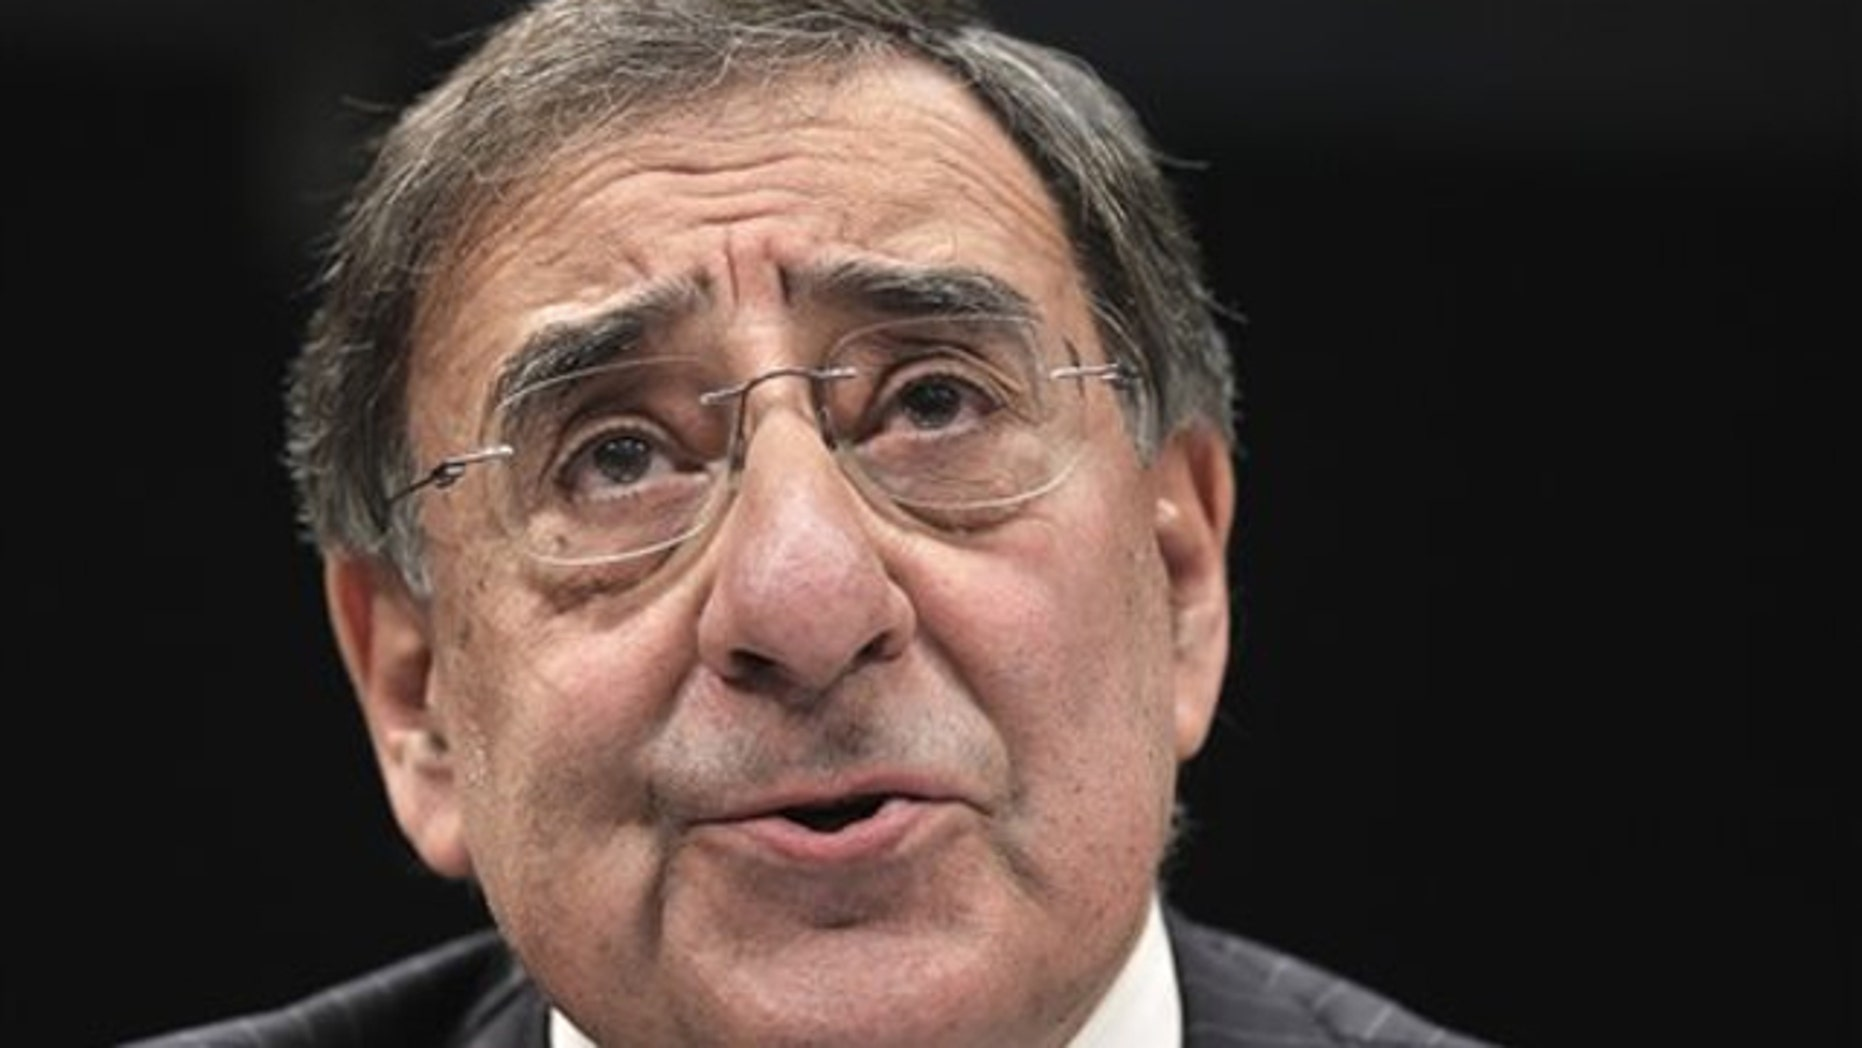 CIA Director Leon Panetta testifies on Capitol Hill in Washington Feb. 10.